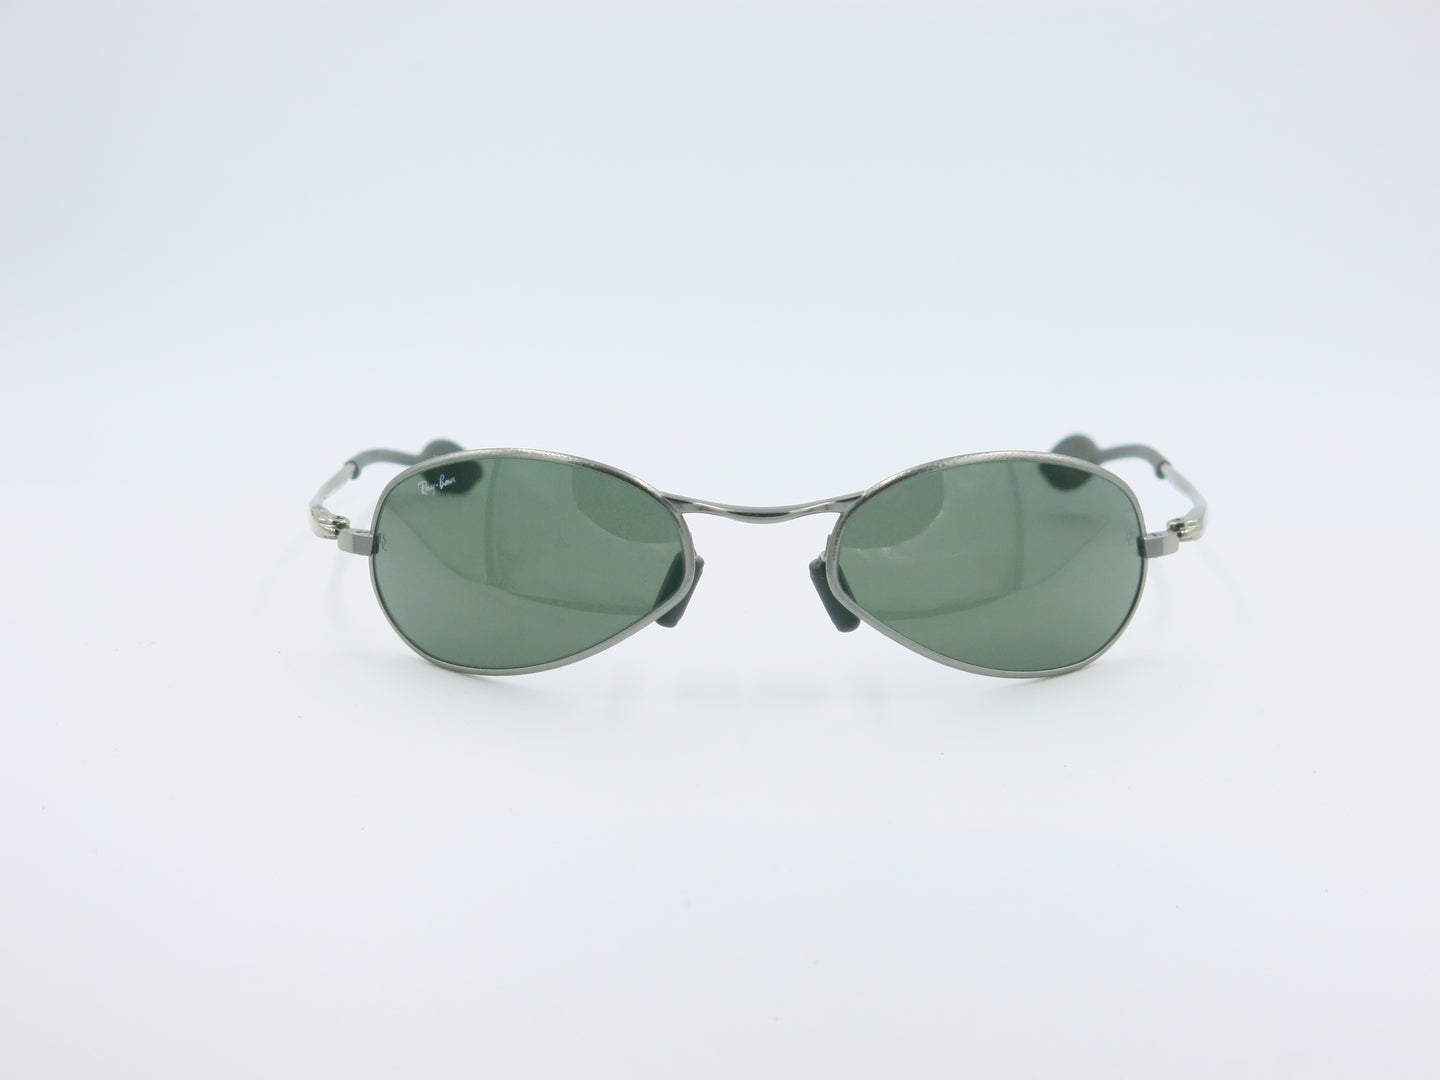 Ray-Ban Sunglasses W 2615 | Sunglasses by Ray Ban | Friedman & Sons